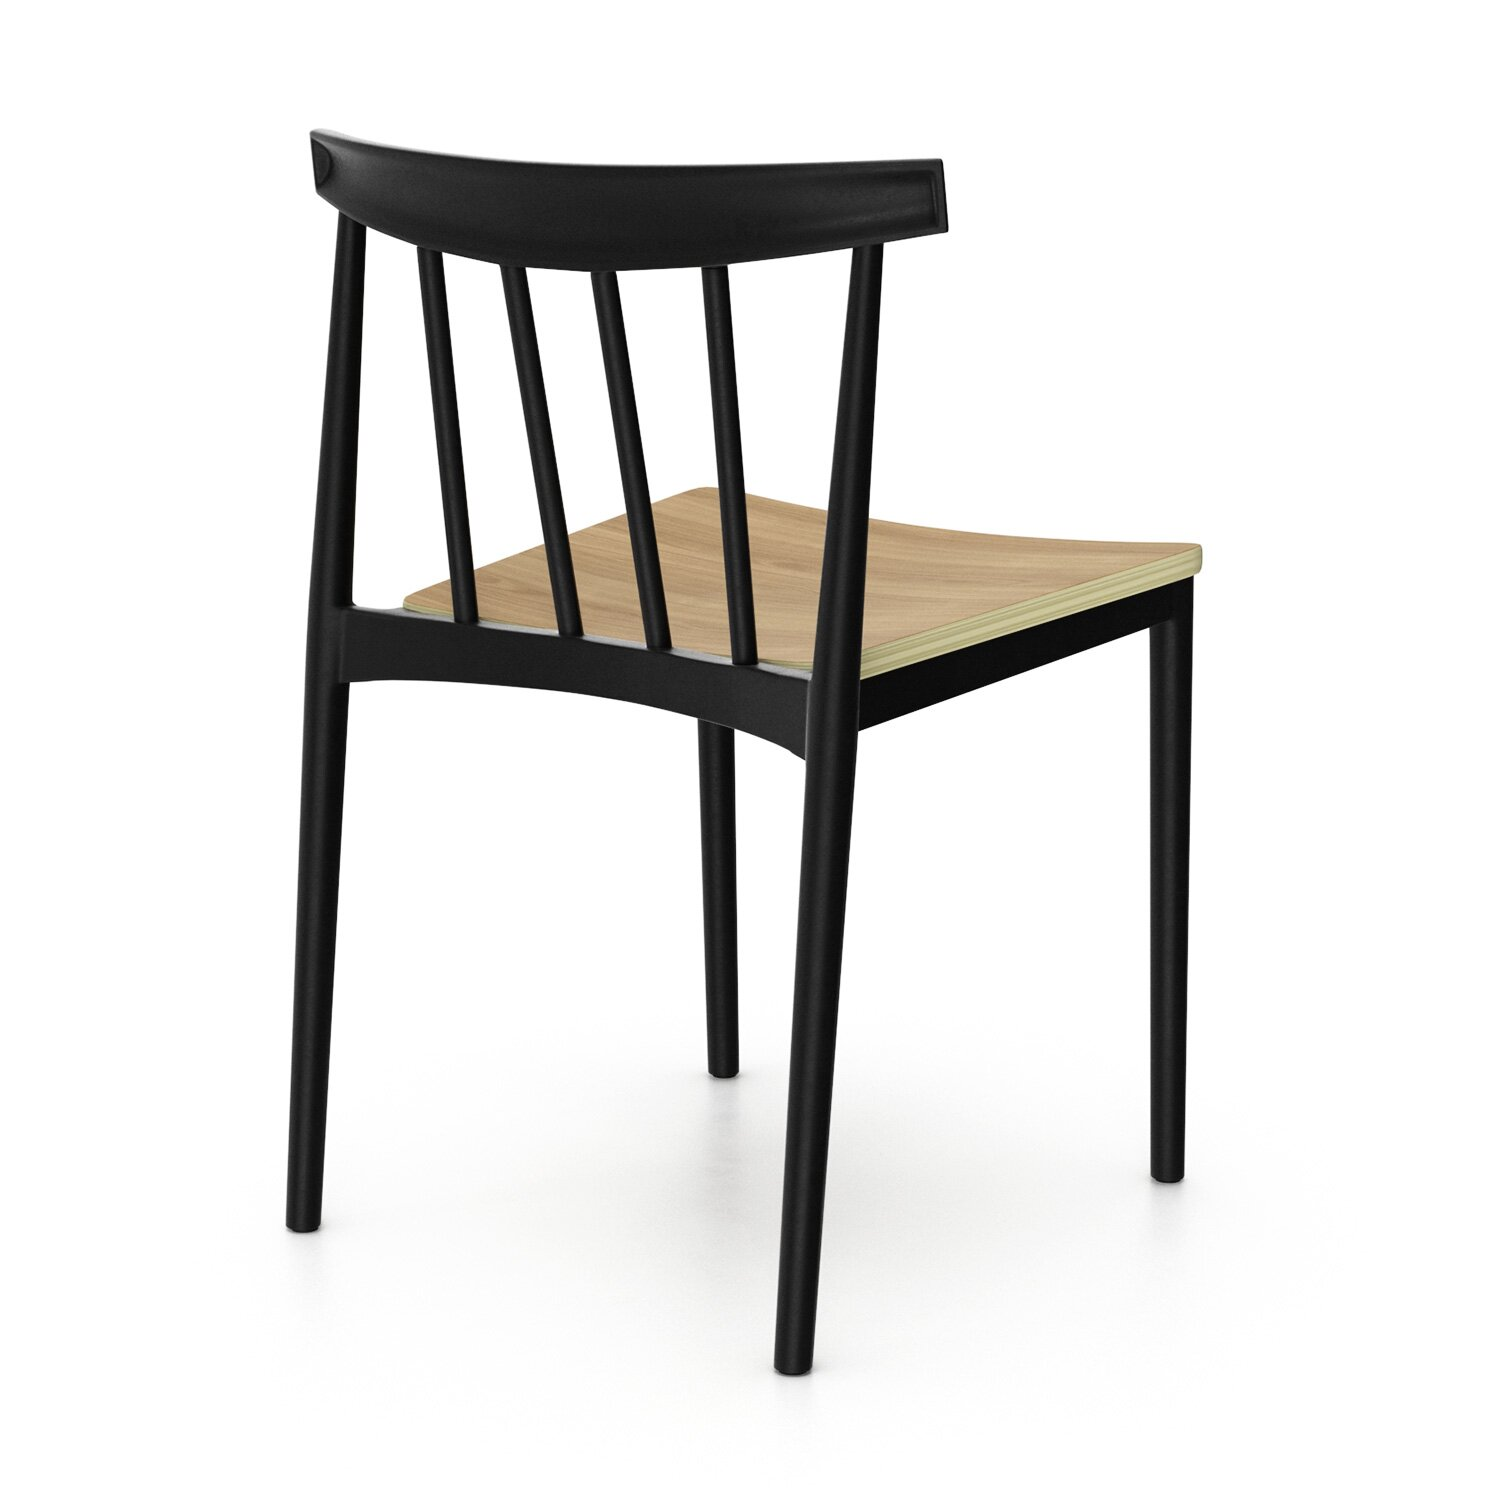 Laurel foundry modern farmhouse octavia side chair wayfair for Modern farmhouse dining chairs